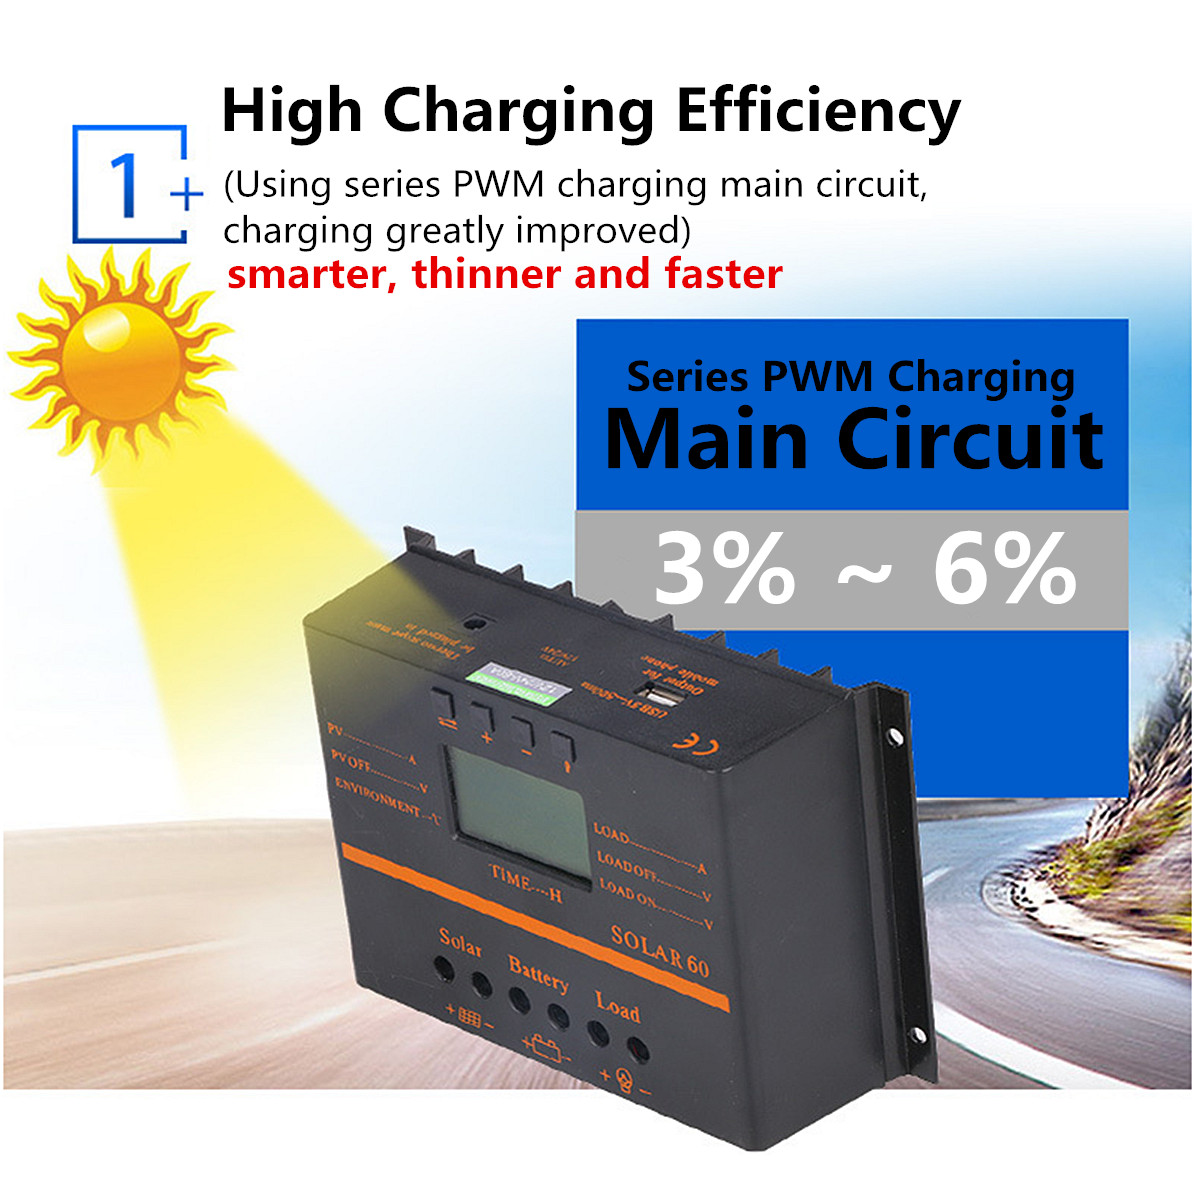 Solar Panel Charge Controller Battery 12V/24V Auto LCD Display PWM Regulator USB 40A/50A/60A/80A Overload Protection Automatic nexen nblue hd plus 155 65r13 73t